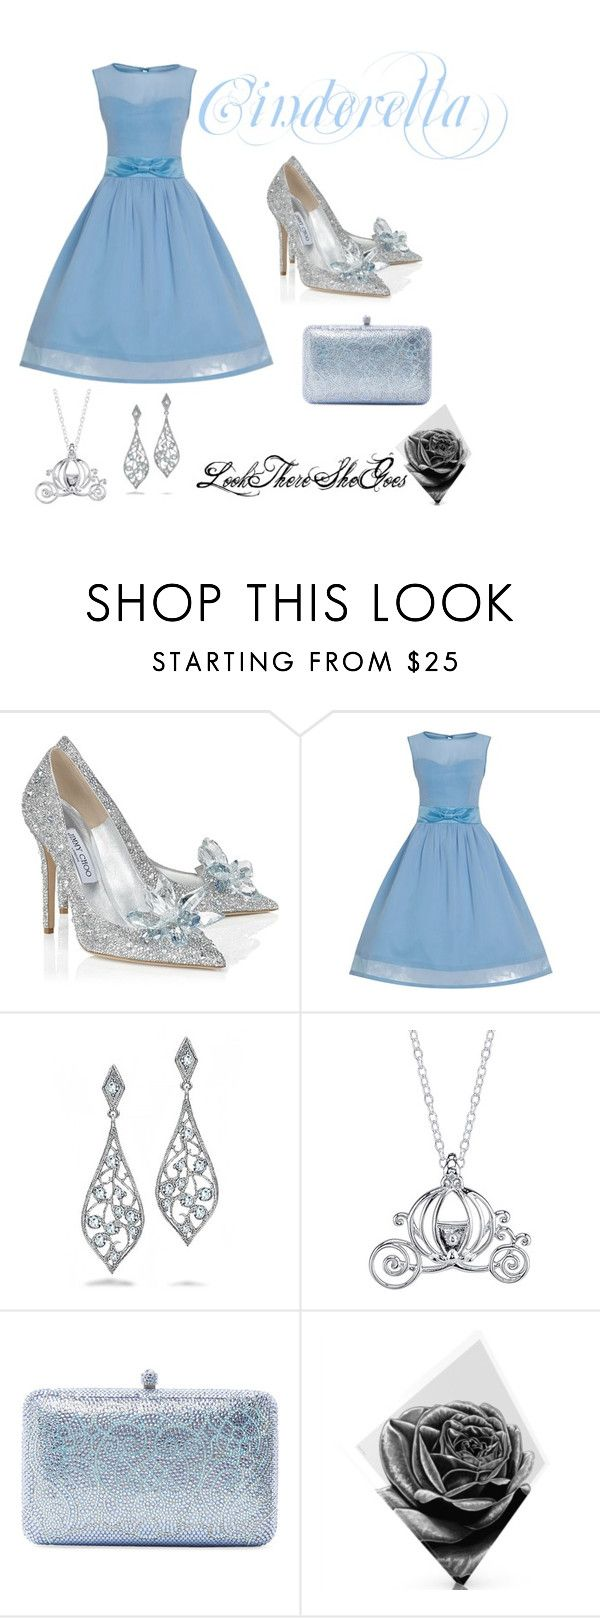 """Cinderella - Disney Princesses 1"" by lookthereshegoes ❤ liked on Polyvore featuring Jimmy Choo, Bling Jewelry, Disney, Sylvia Toledano and Maxwell Dickson"